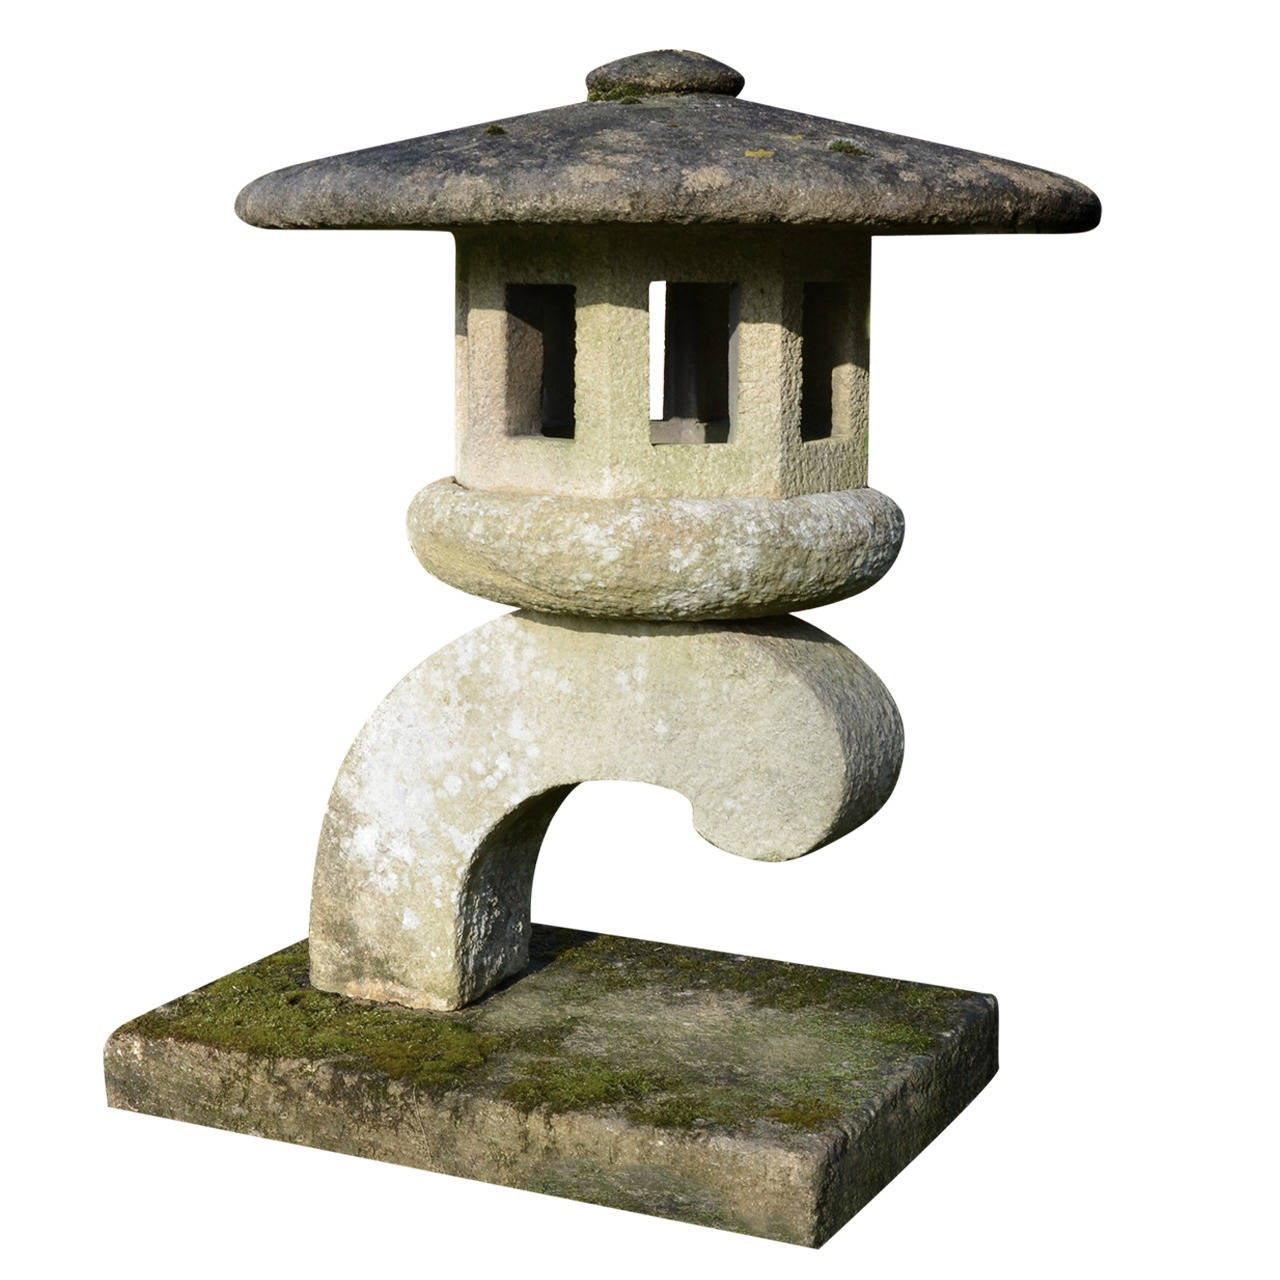 Carved bath stone japanese toro or lamp at stdibs